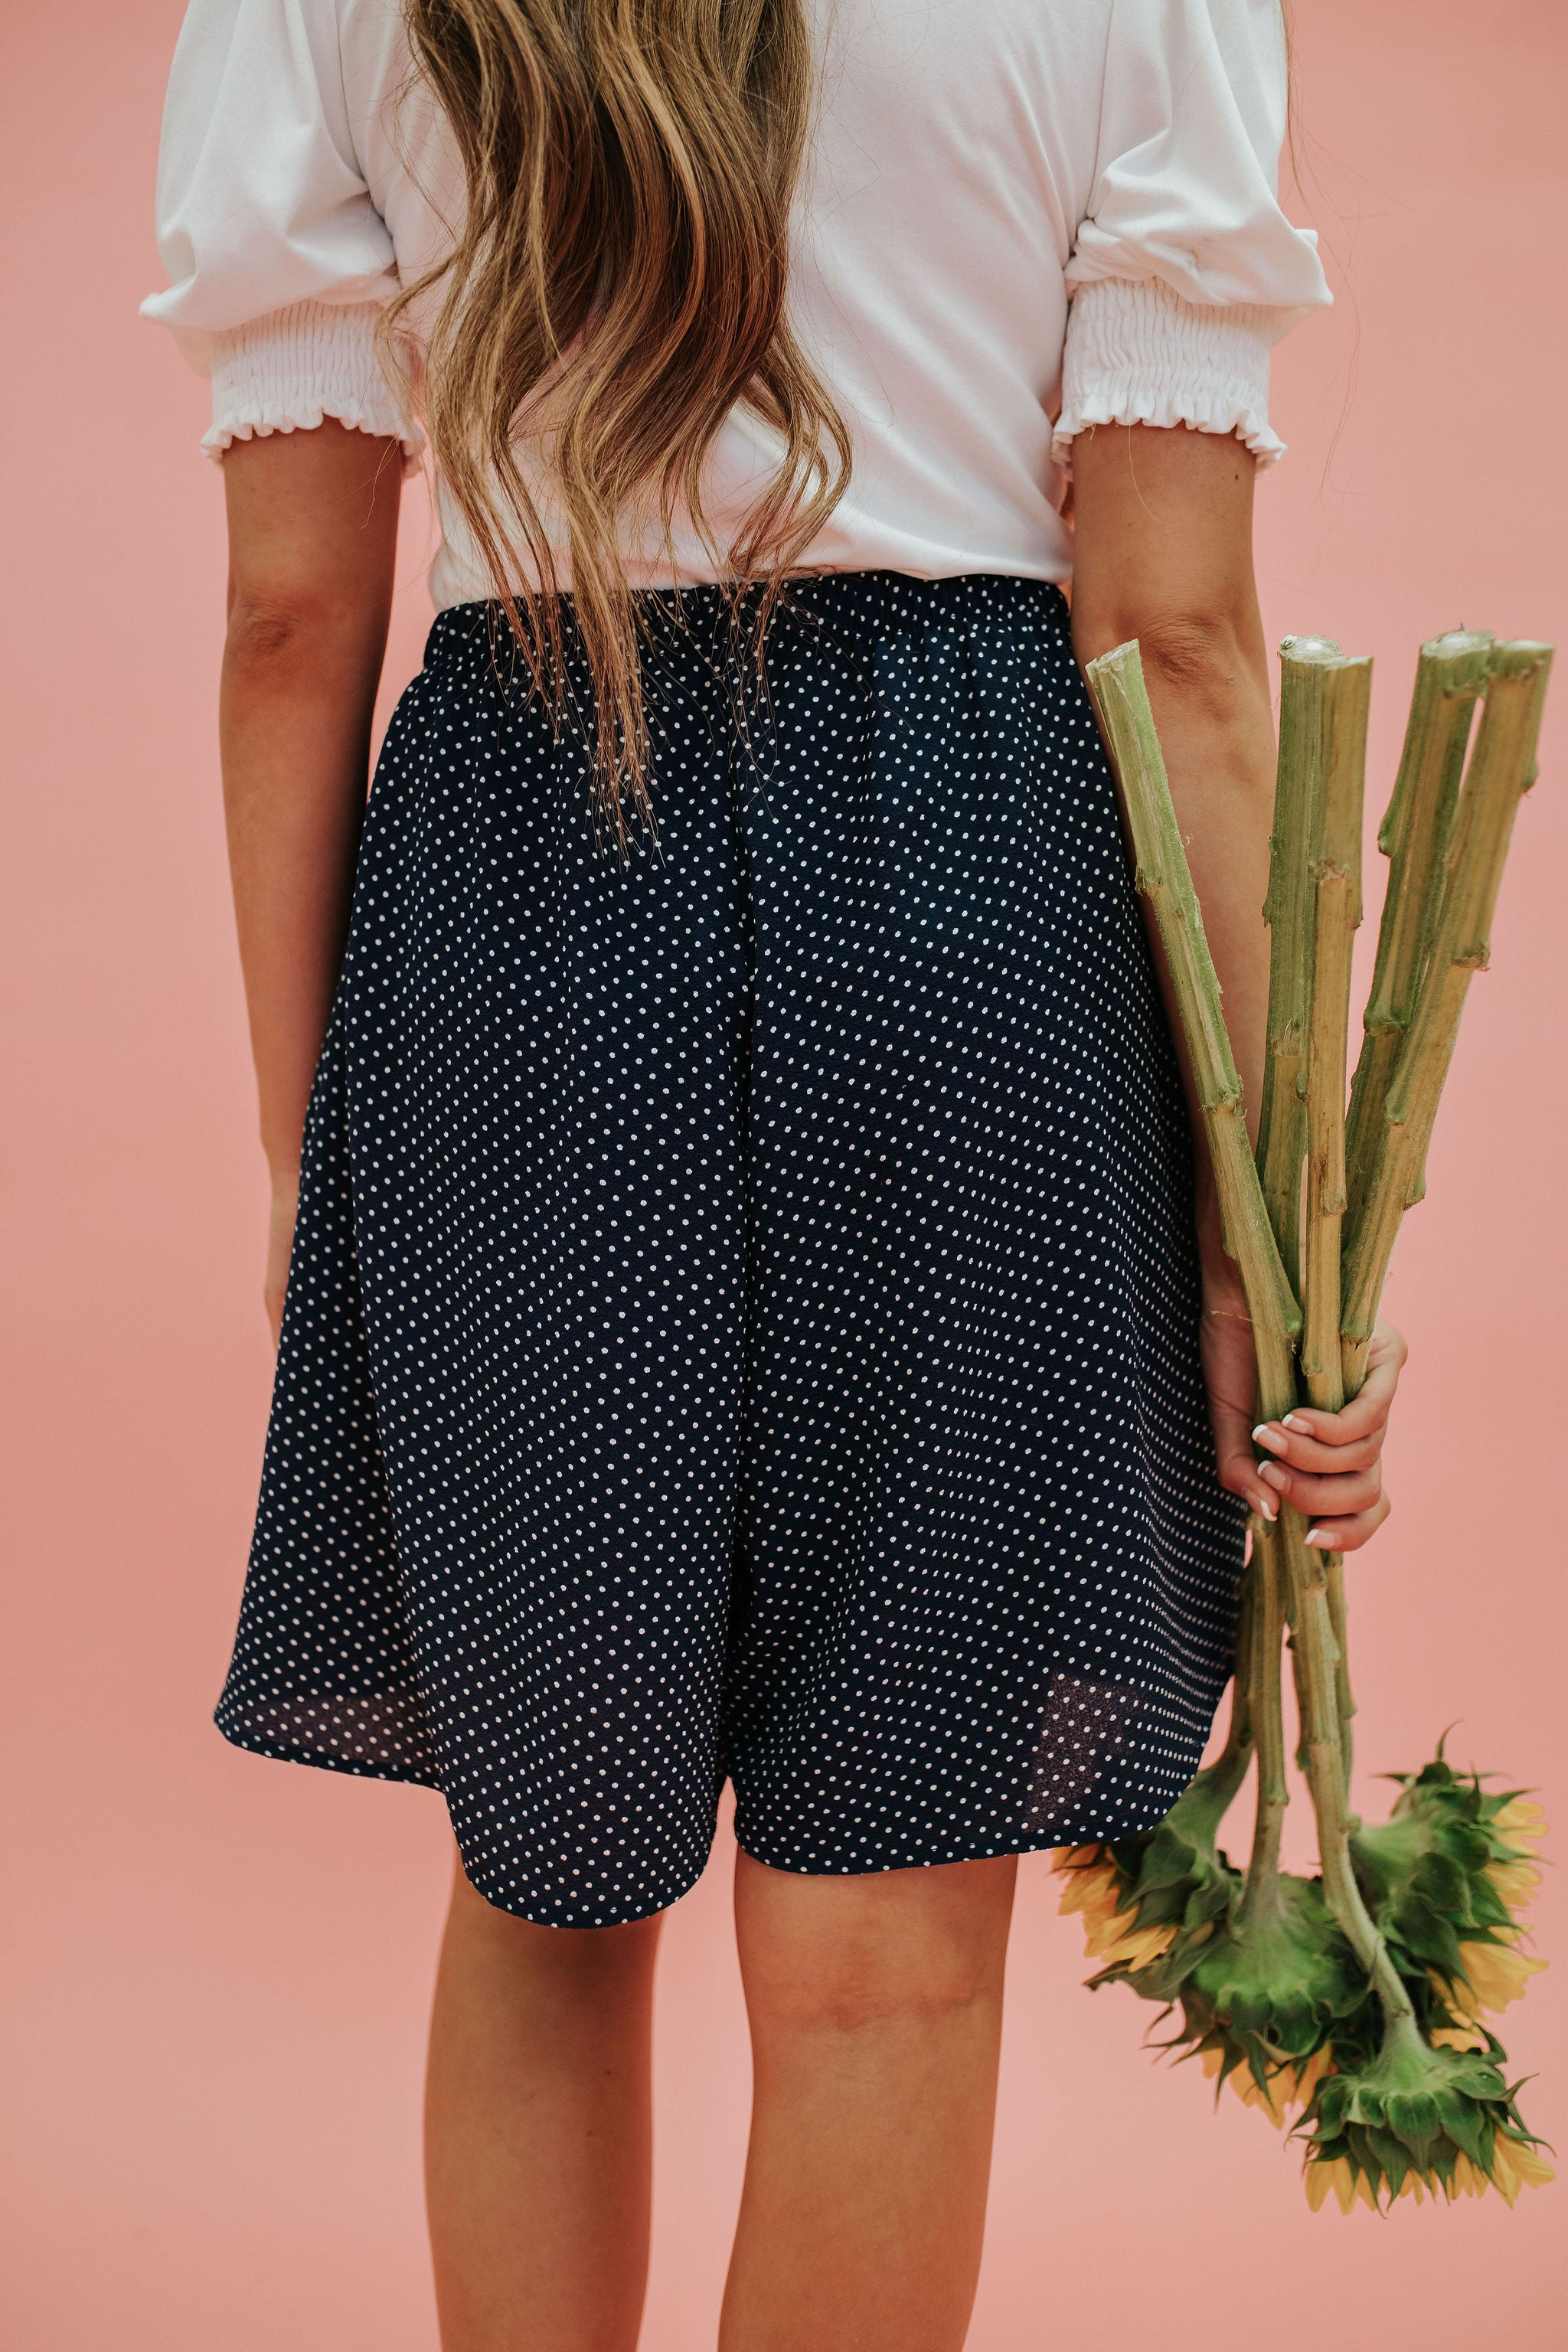 THE PENNIE POLKA DOT SHORTS IN NAVY